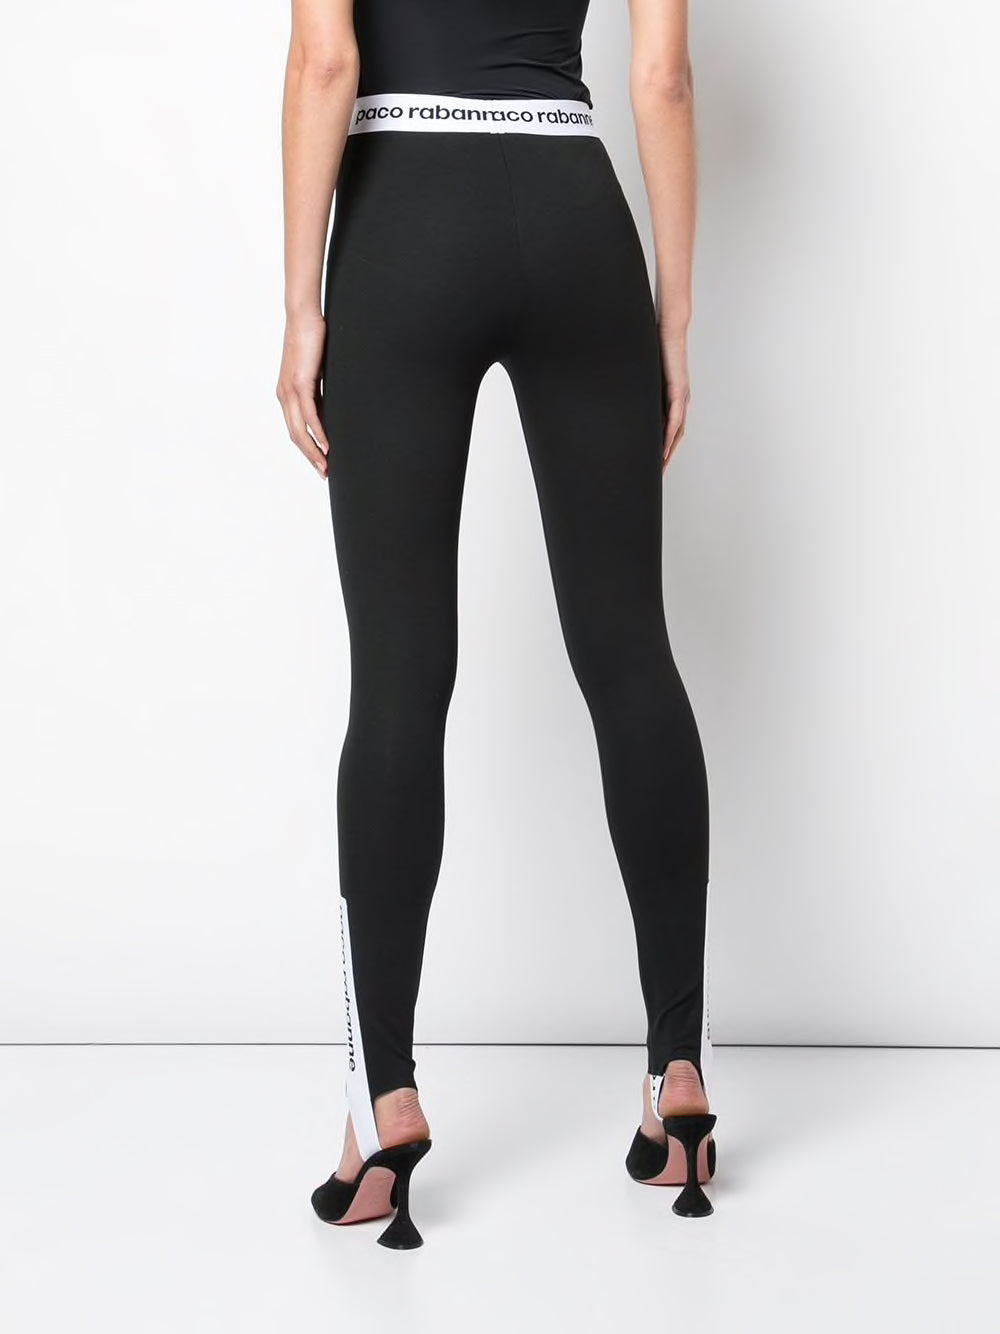 PACO RABANNE WOMEN PANTALON STIRRUP LEGGINGS